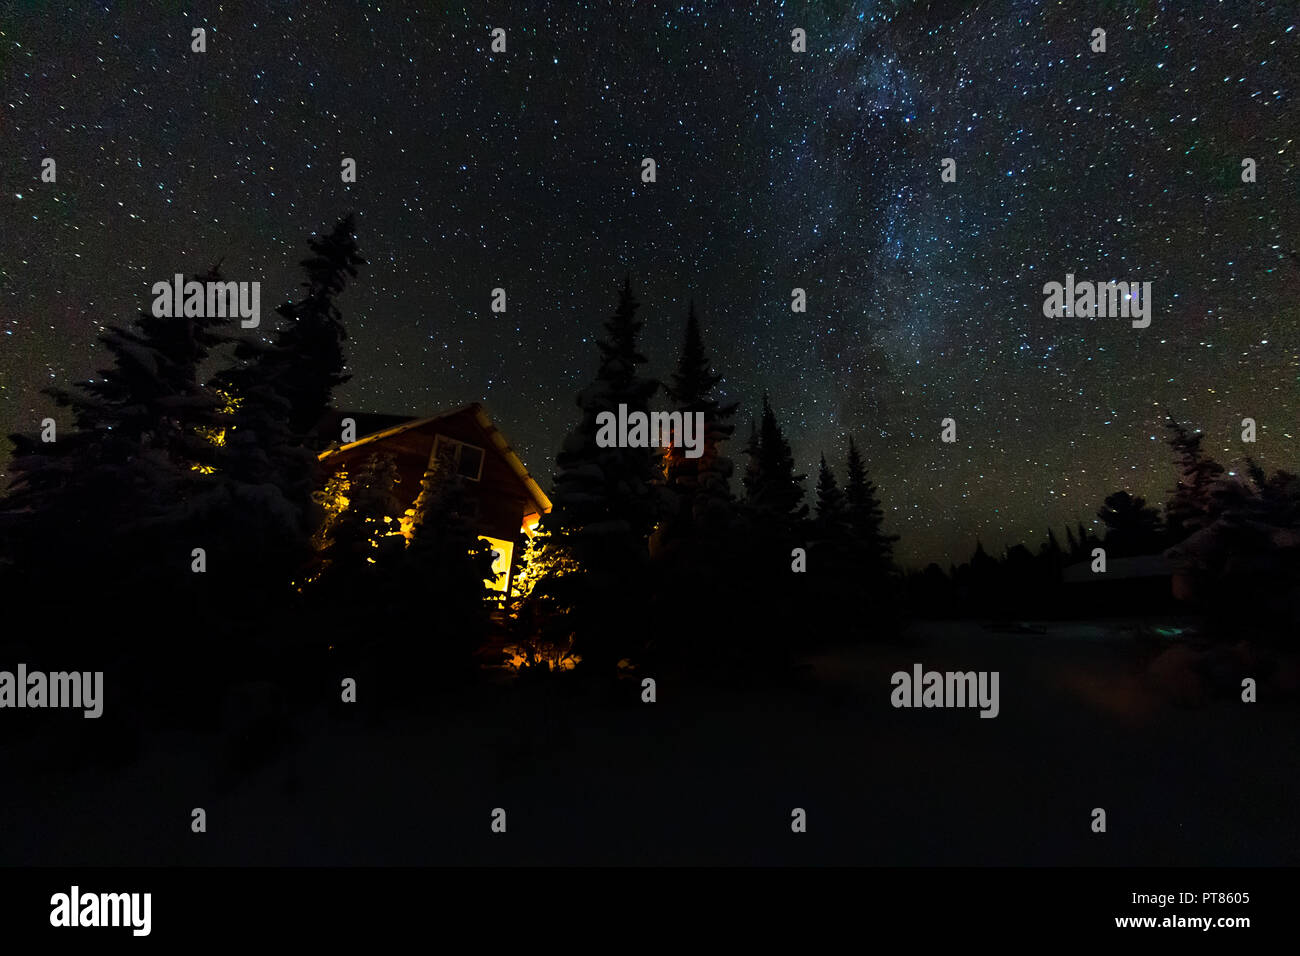 Light from the window of a forest hut under the night sky of the milky way in the winter forest. - Stock Image